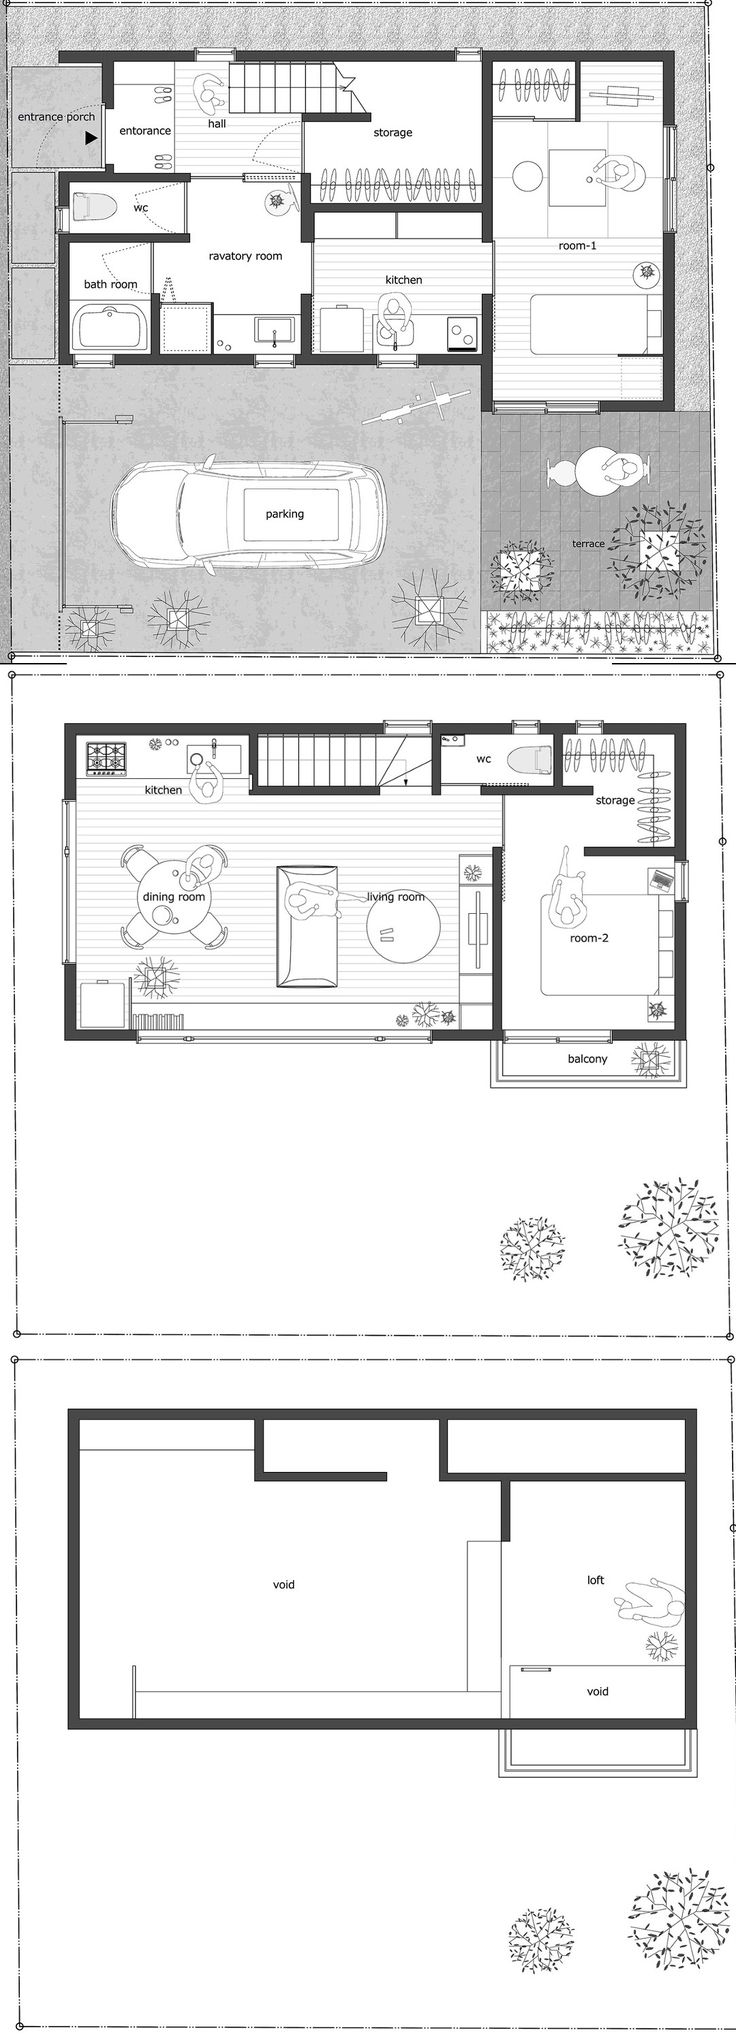 30 best ideas for dream house images on pinterest house floor 30 best ideas for dream house images on pinterest house floor plans traditional japanese house and japanese architecture